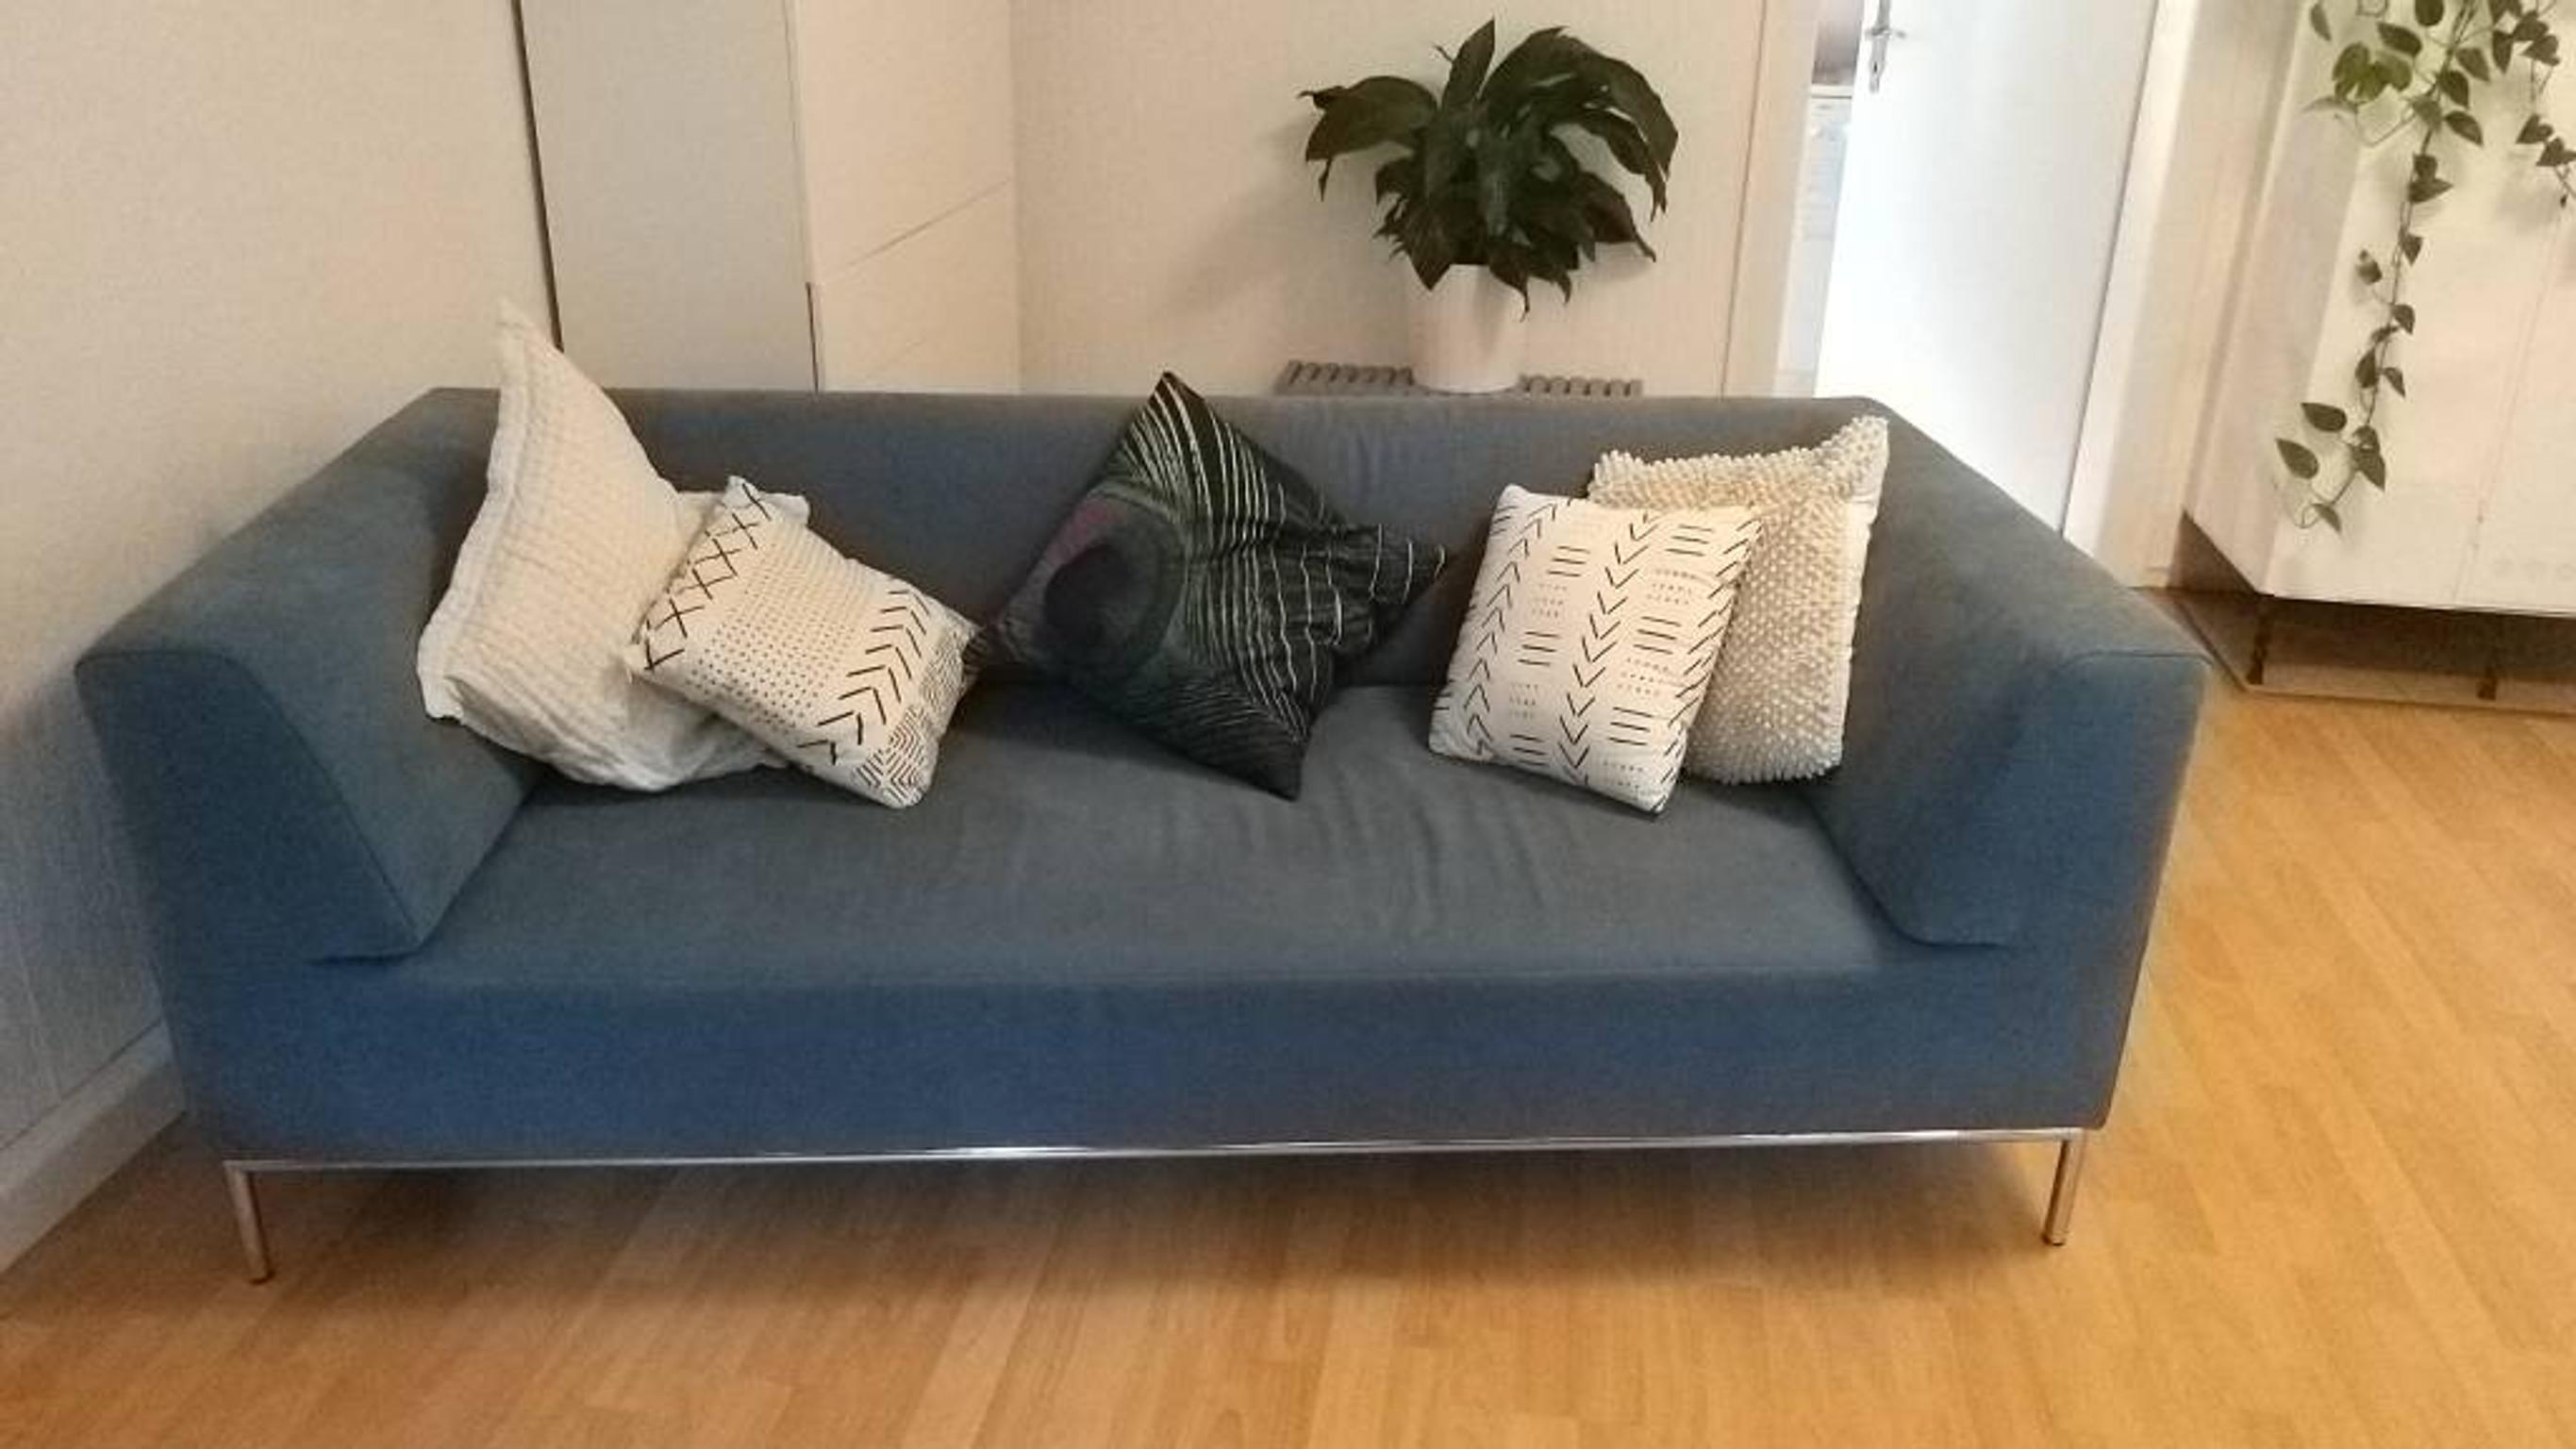 Freistil Sofa Sofa Rolf Benz Freistil 185 In 60433 Frankfurt Am Main For €780.00 For Sale | Shpock